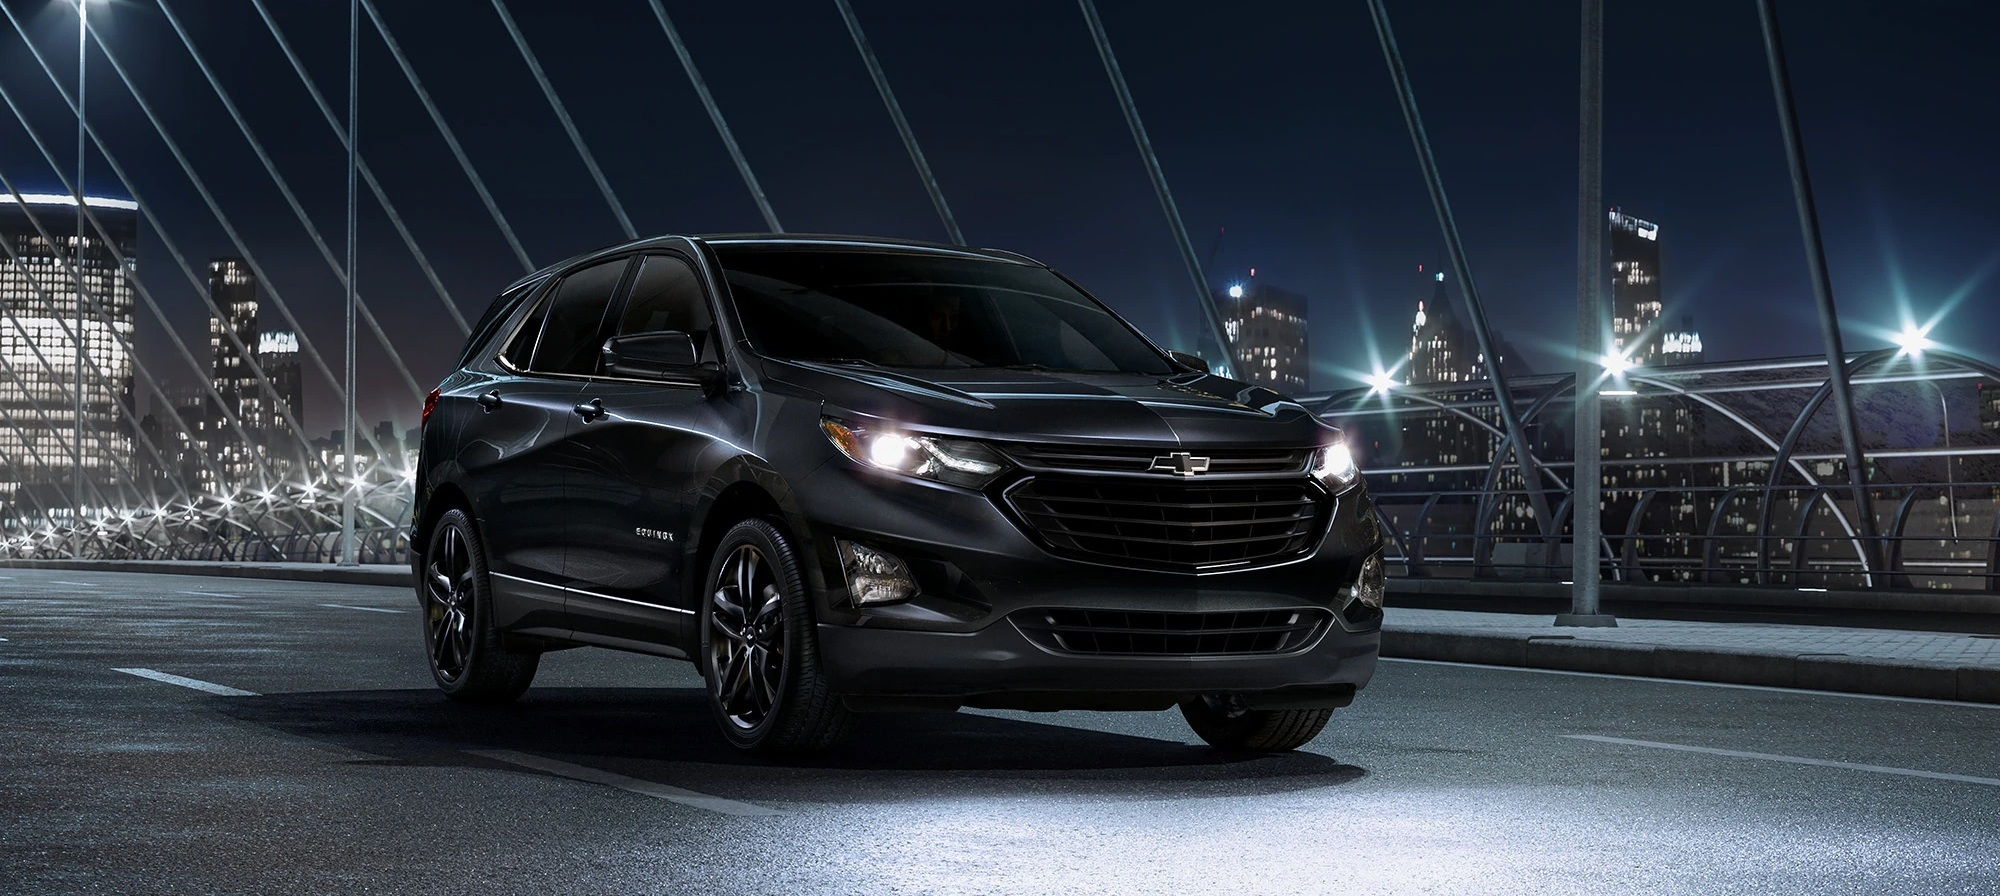 2020 Chevrolet Equinox for Sale near Homewood, IL